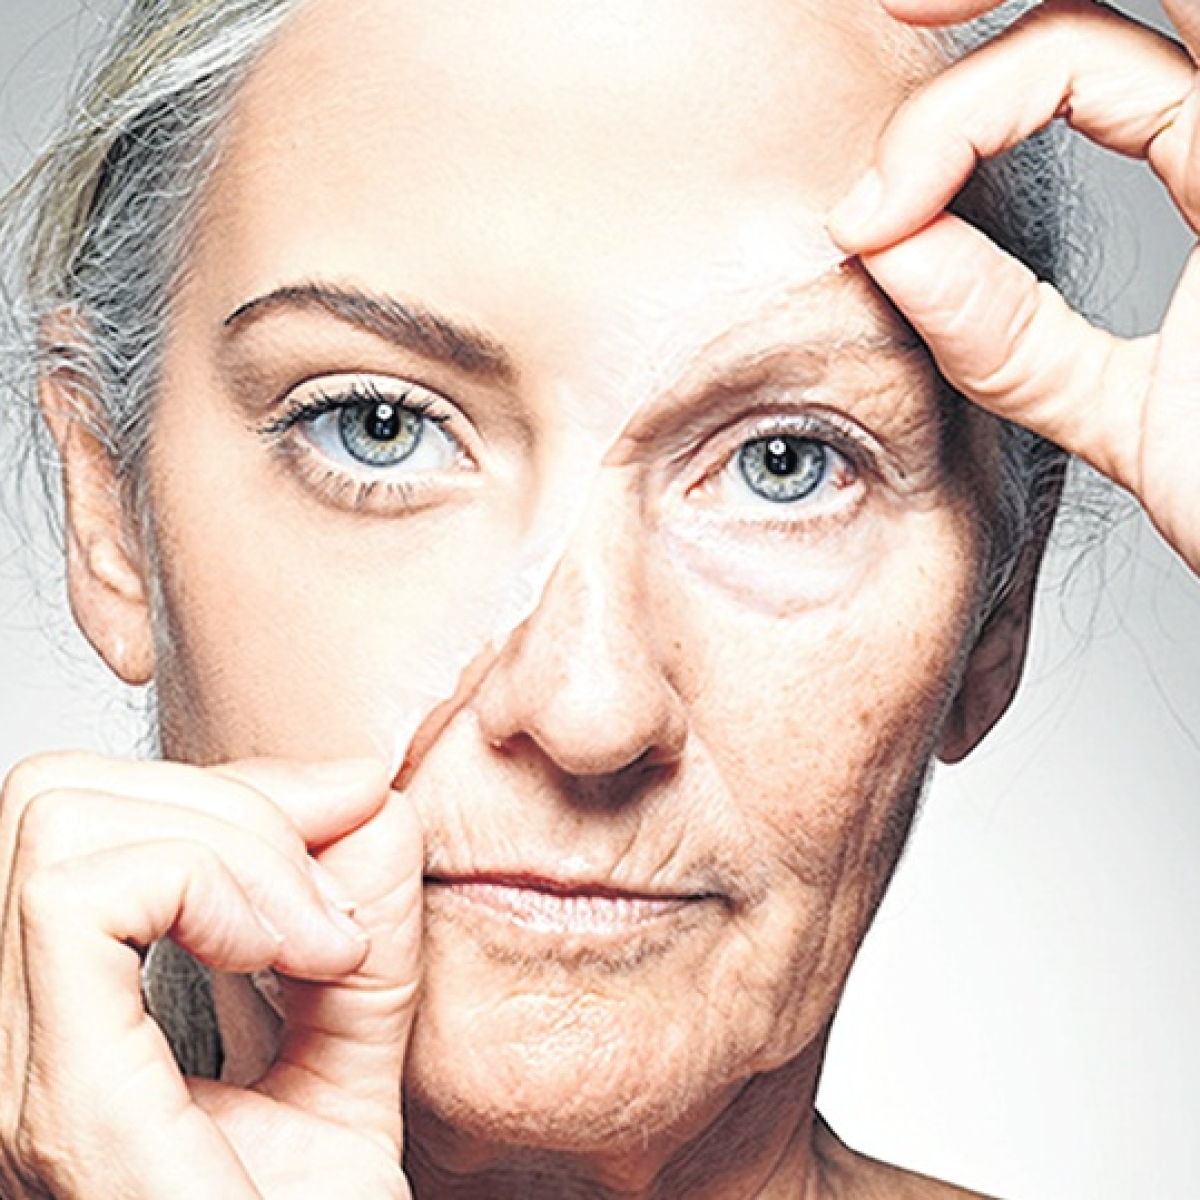 Stem Cell Replacement Therapy for anti-ageing and wellness: How good is it?